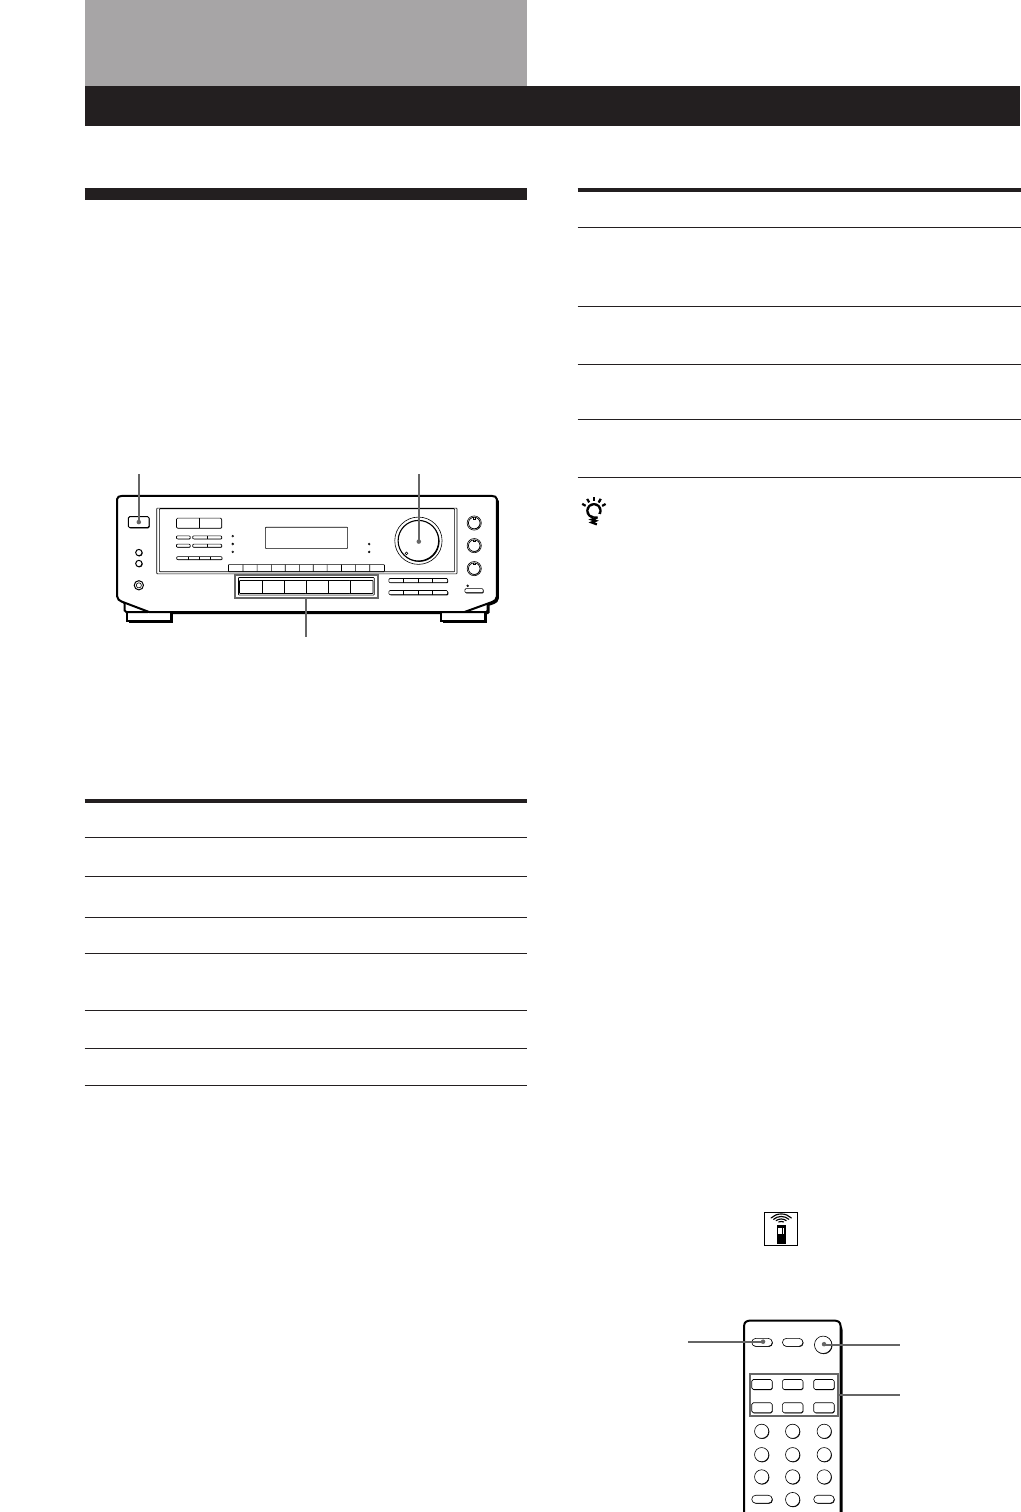 Sony STR-DE405 user manual (75 pages)